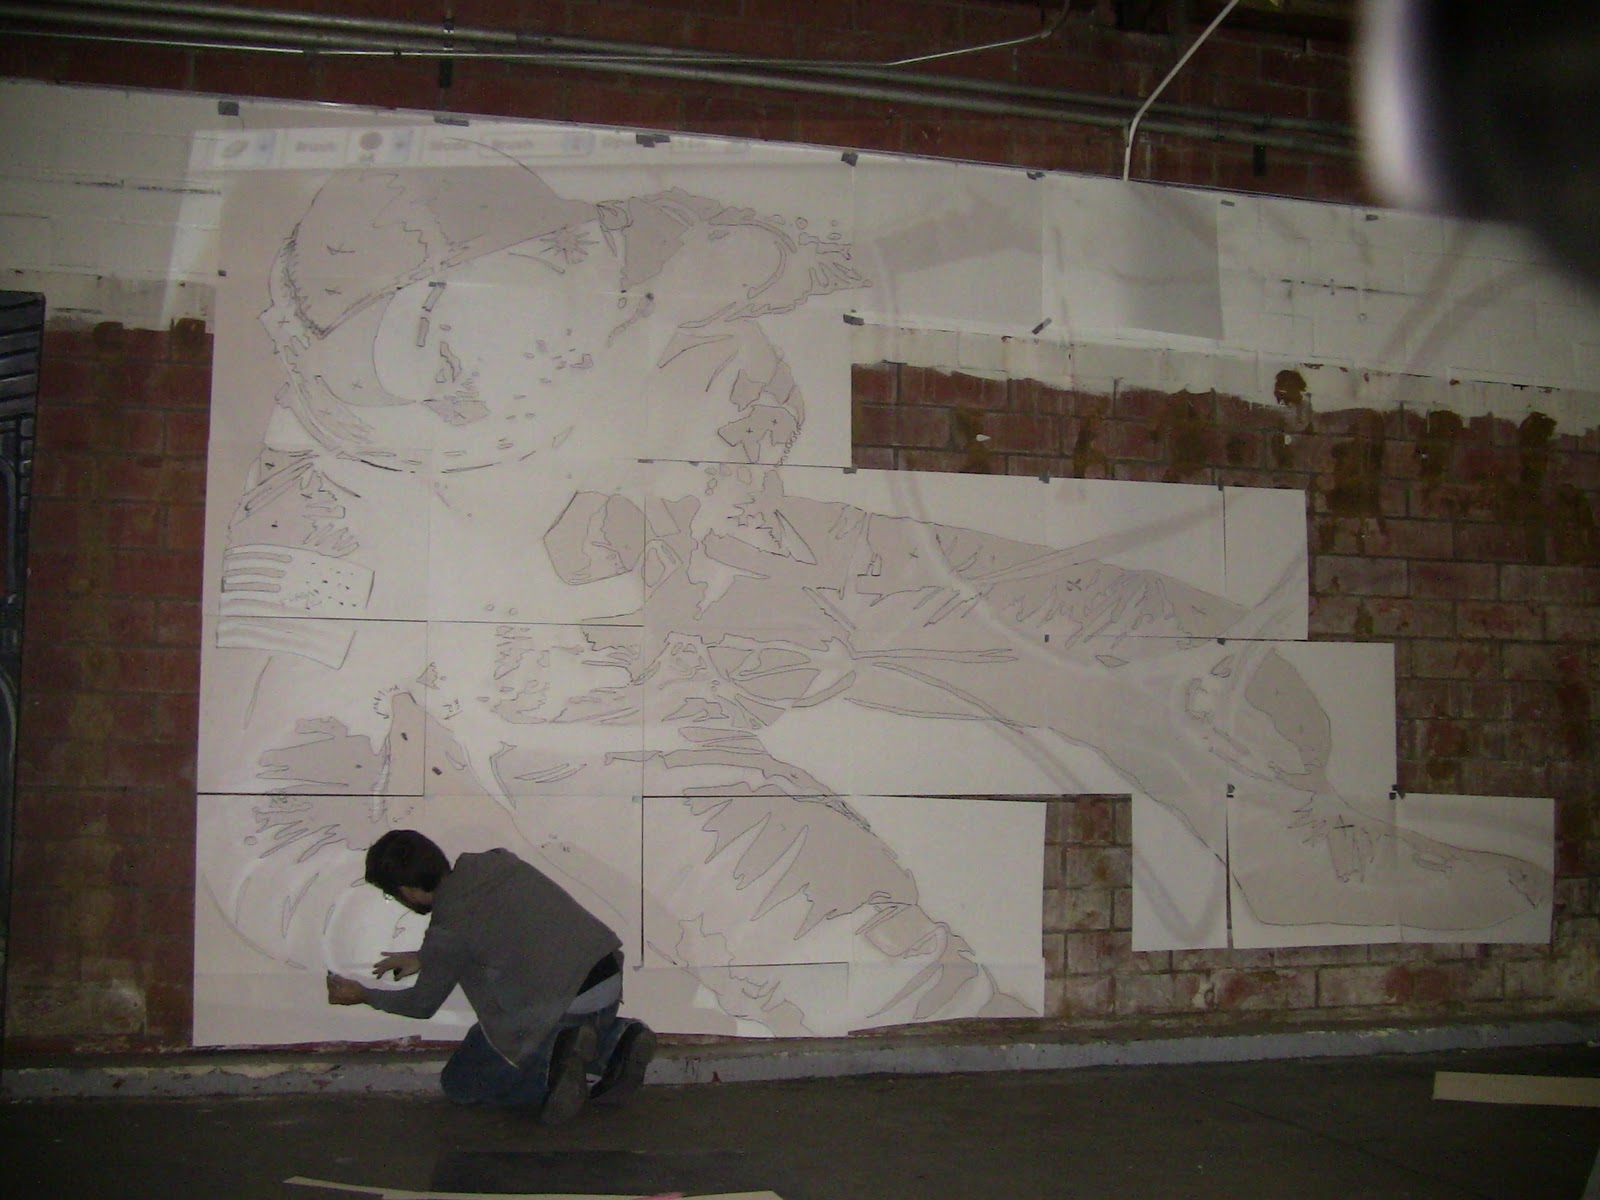 ... Wall Mural Projector La Mural Front Tumble Vision Uses A Projector To A  Stencil For The ... Part 53